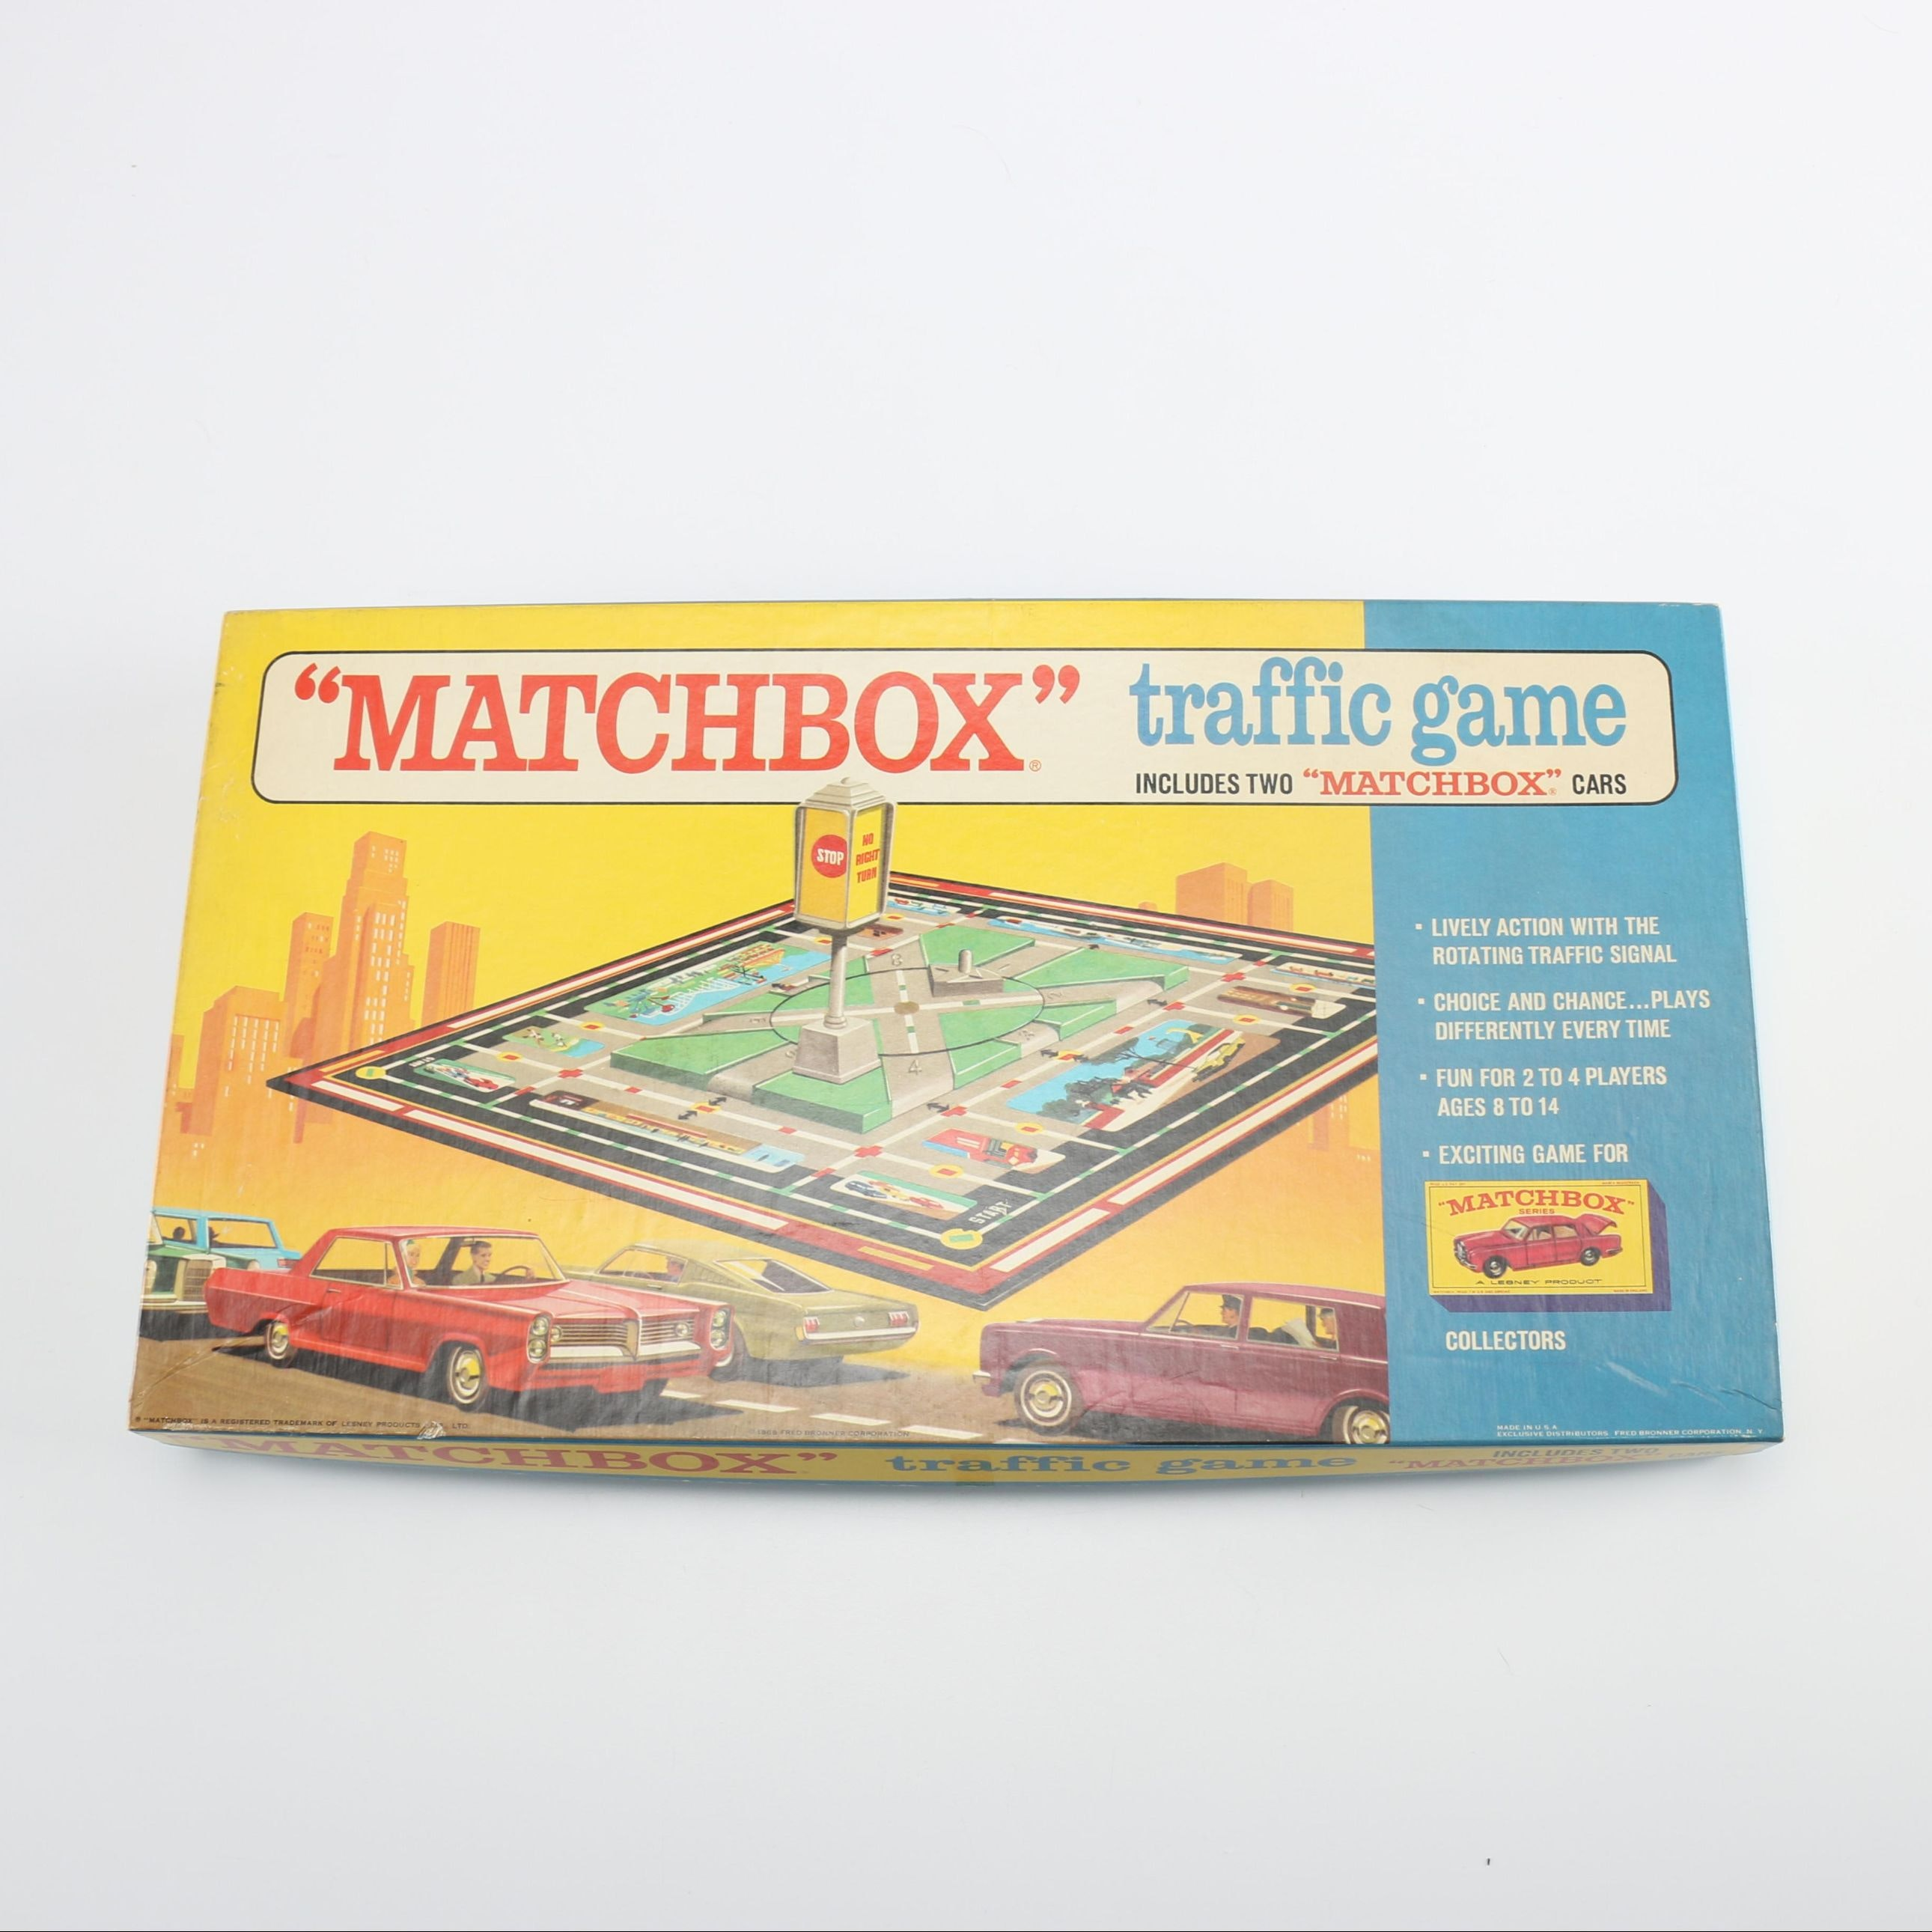 1968 Matchbox Traffic Game with Two Matchbox Cars